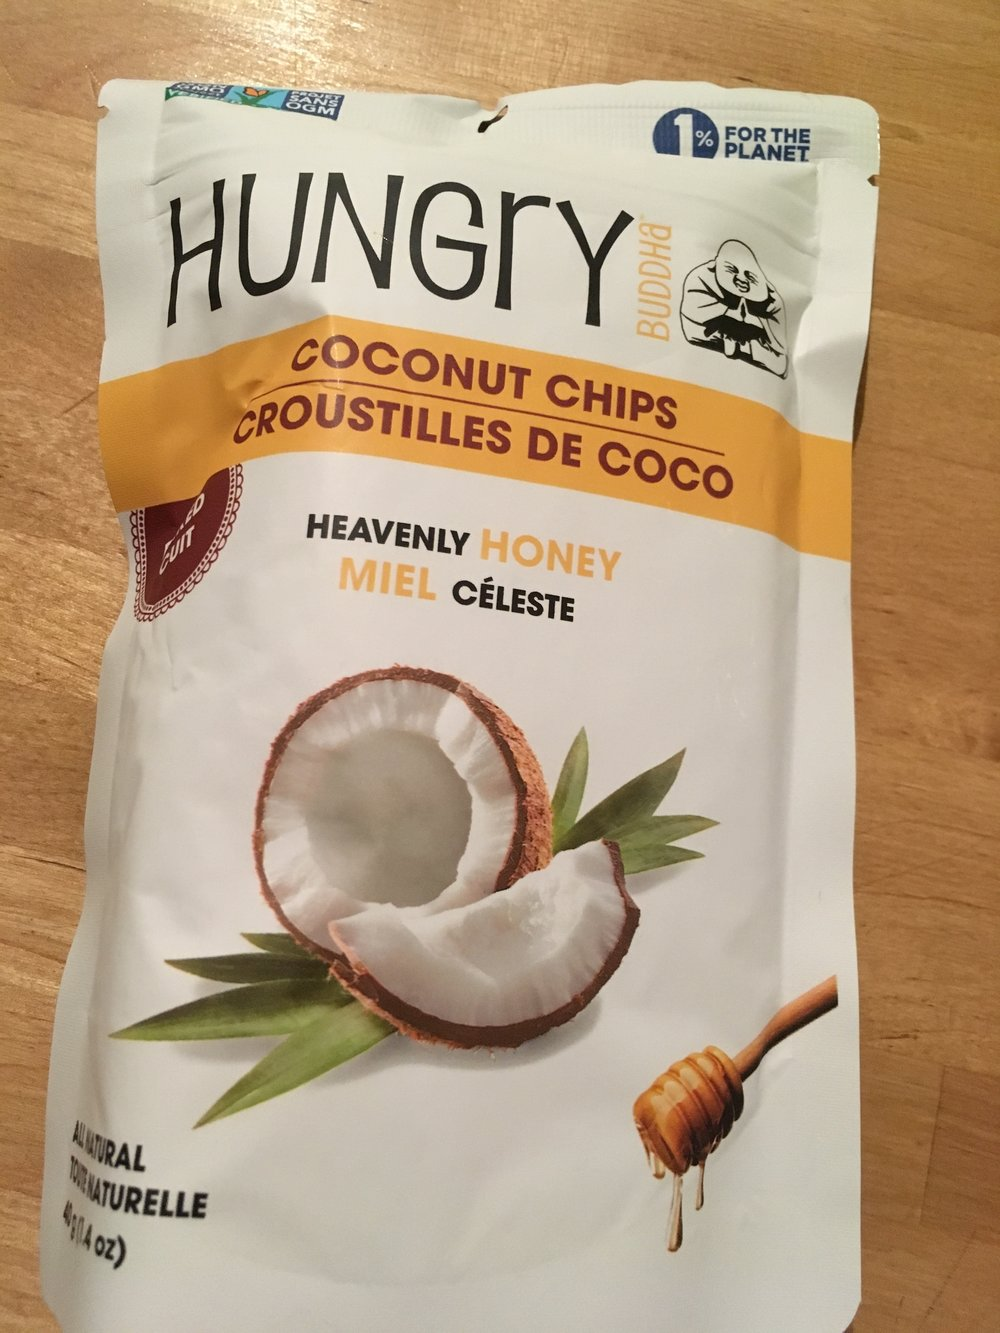 These Hungry Coconut Chips were the first food item to go. Fresh & delicious fuel. I love anything coconut.Not 1000% vegan because of the honey.